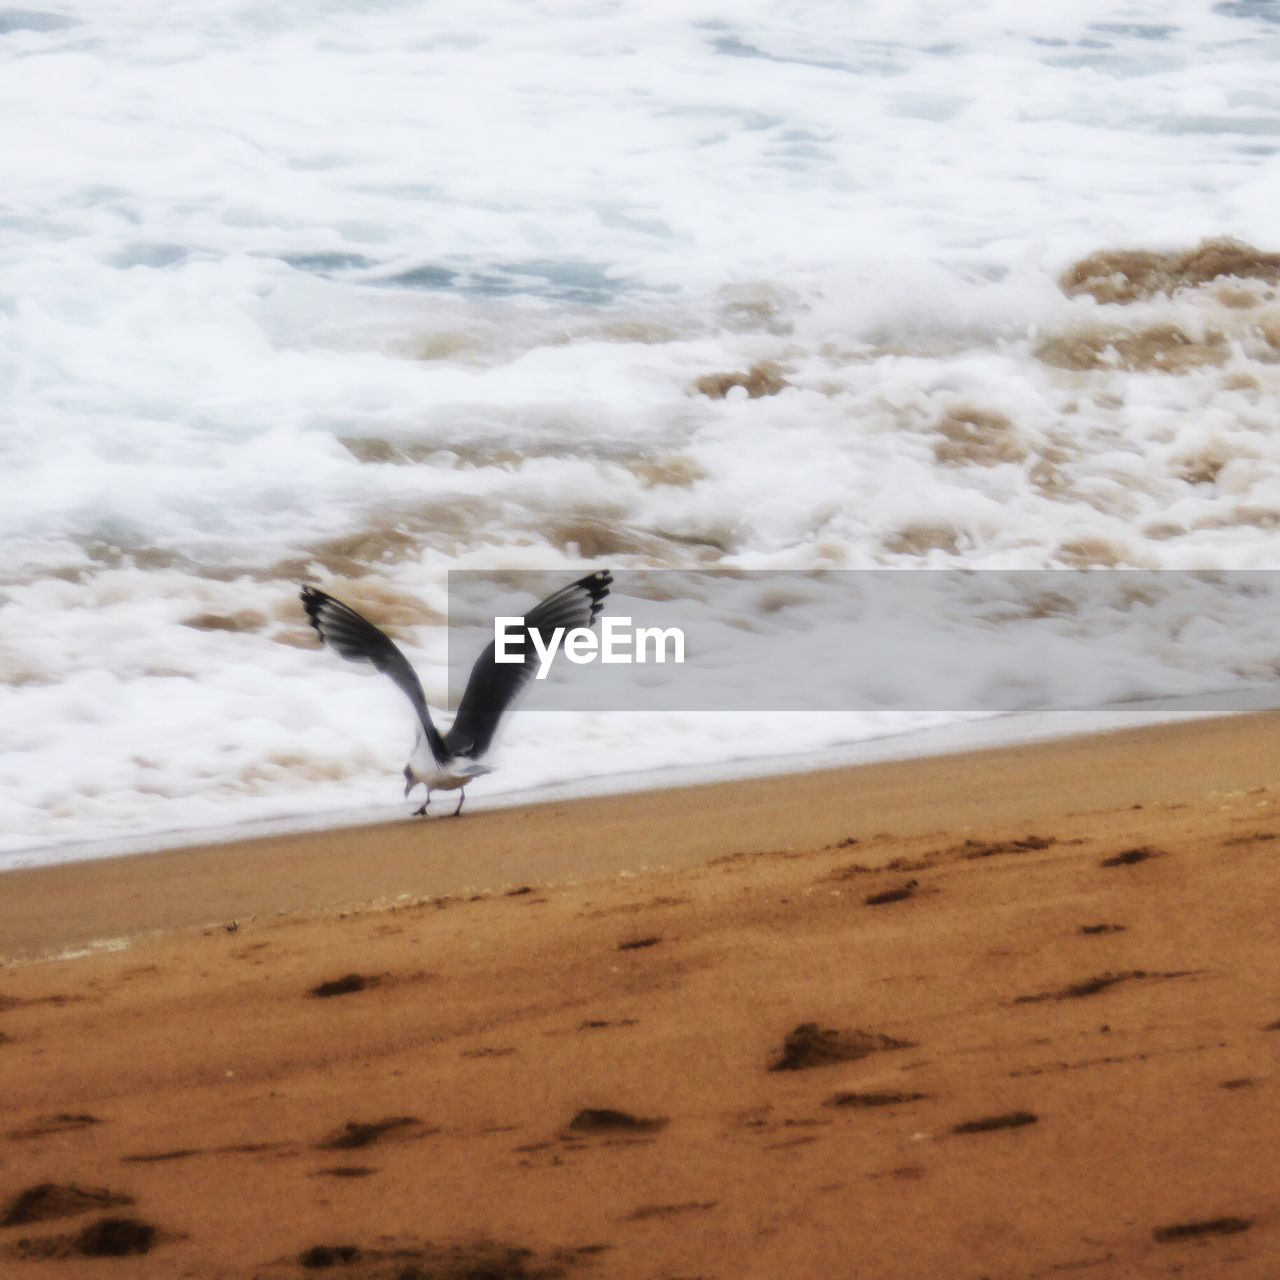 bird, animal themes, nature, sand, animals in the wild, water, one animal, beach, day, animal wildlife, motion, outdoors, sea, beauty in nature, no people, flying, scenics, spread wings, wave, sky